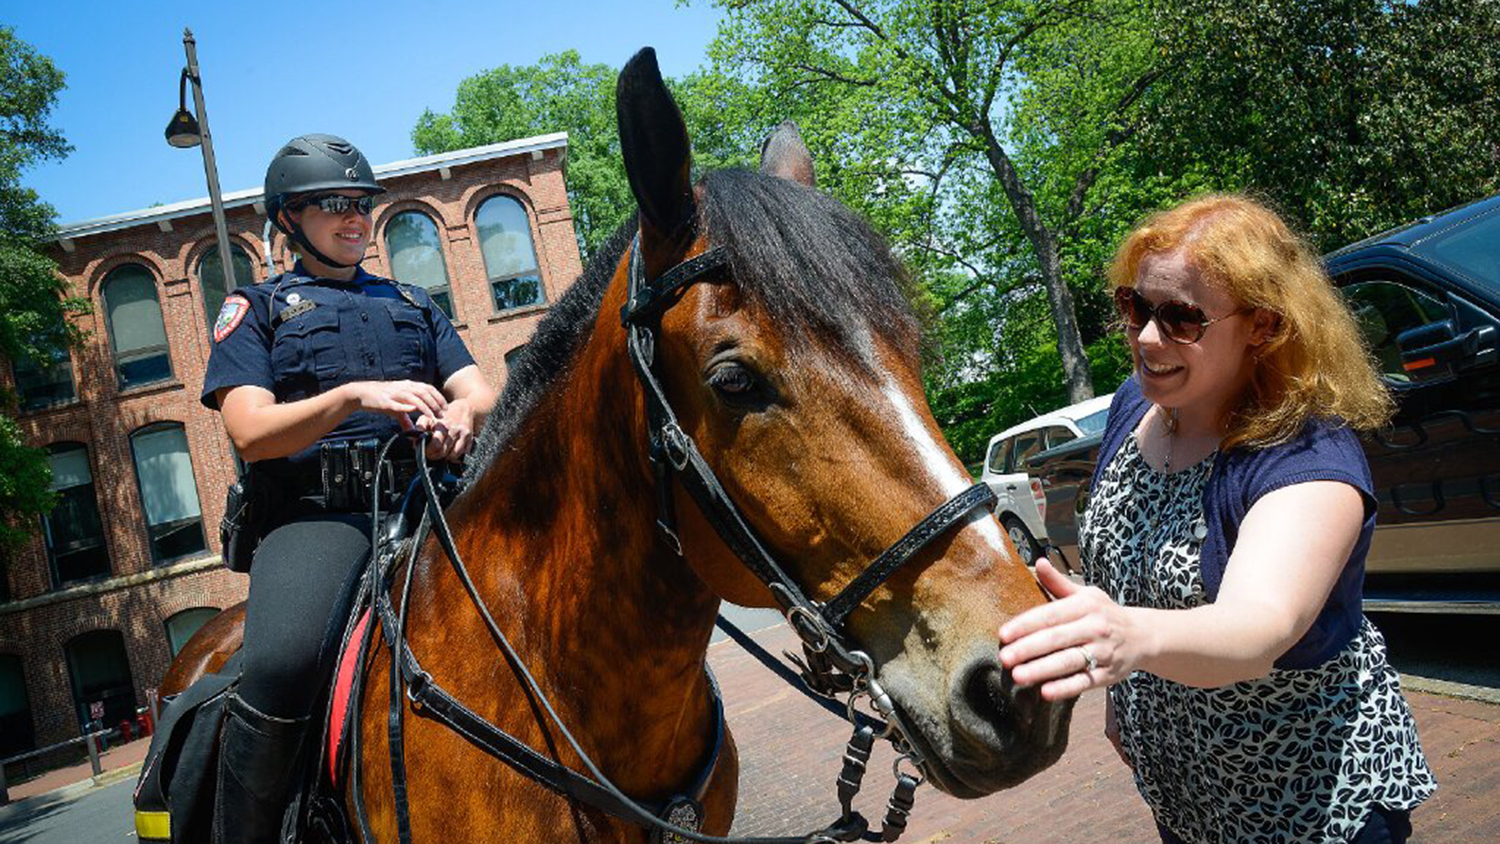 Mounted officer on horse, with her adviser.